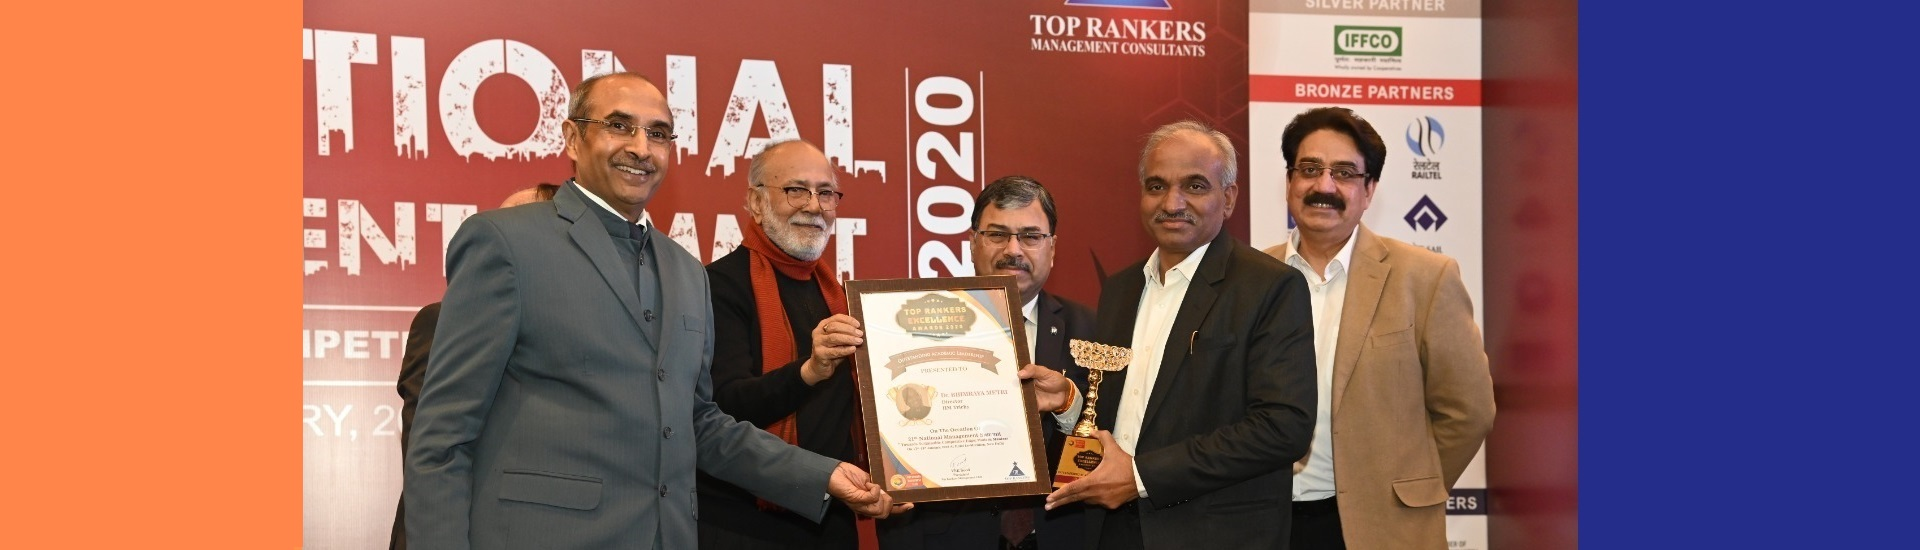 Dr. Bhimaraya Metri, Director IIMT Receives Top Rankers Excellence Award for  Outstanding Academic leadership